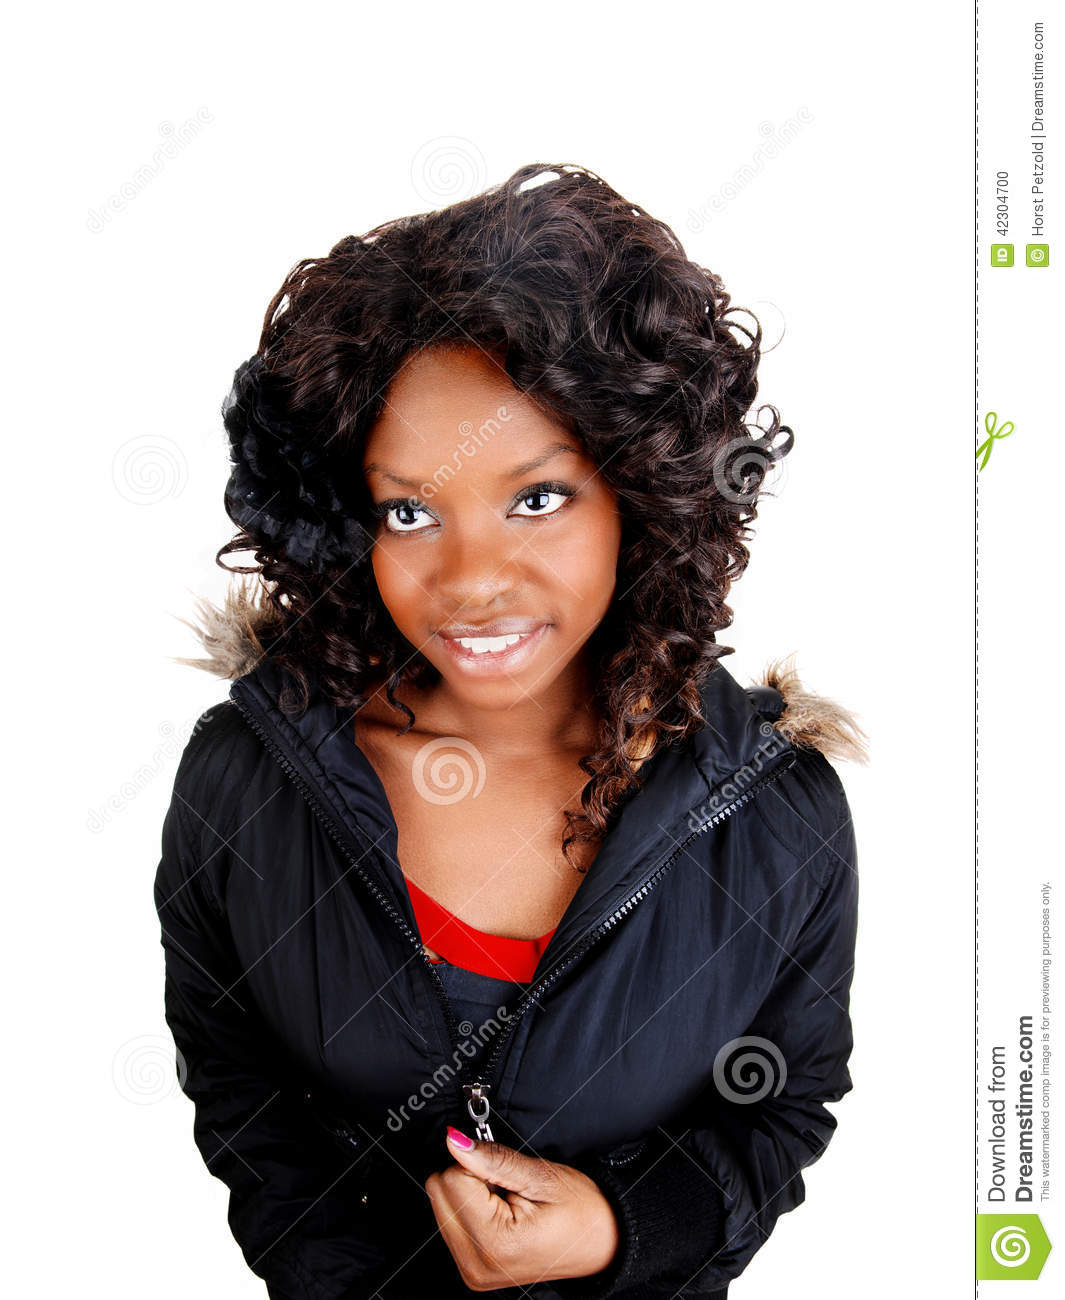 Jamaican Girl In Jacket Stock Photo Image Of Lady, Cute -8665